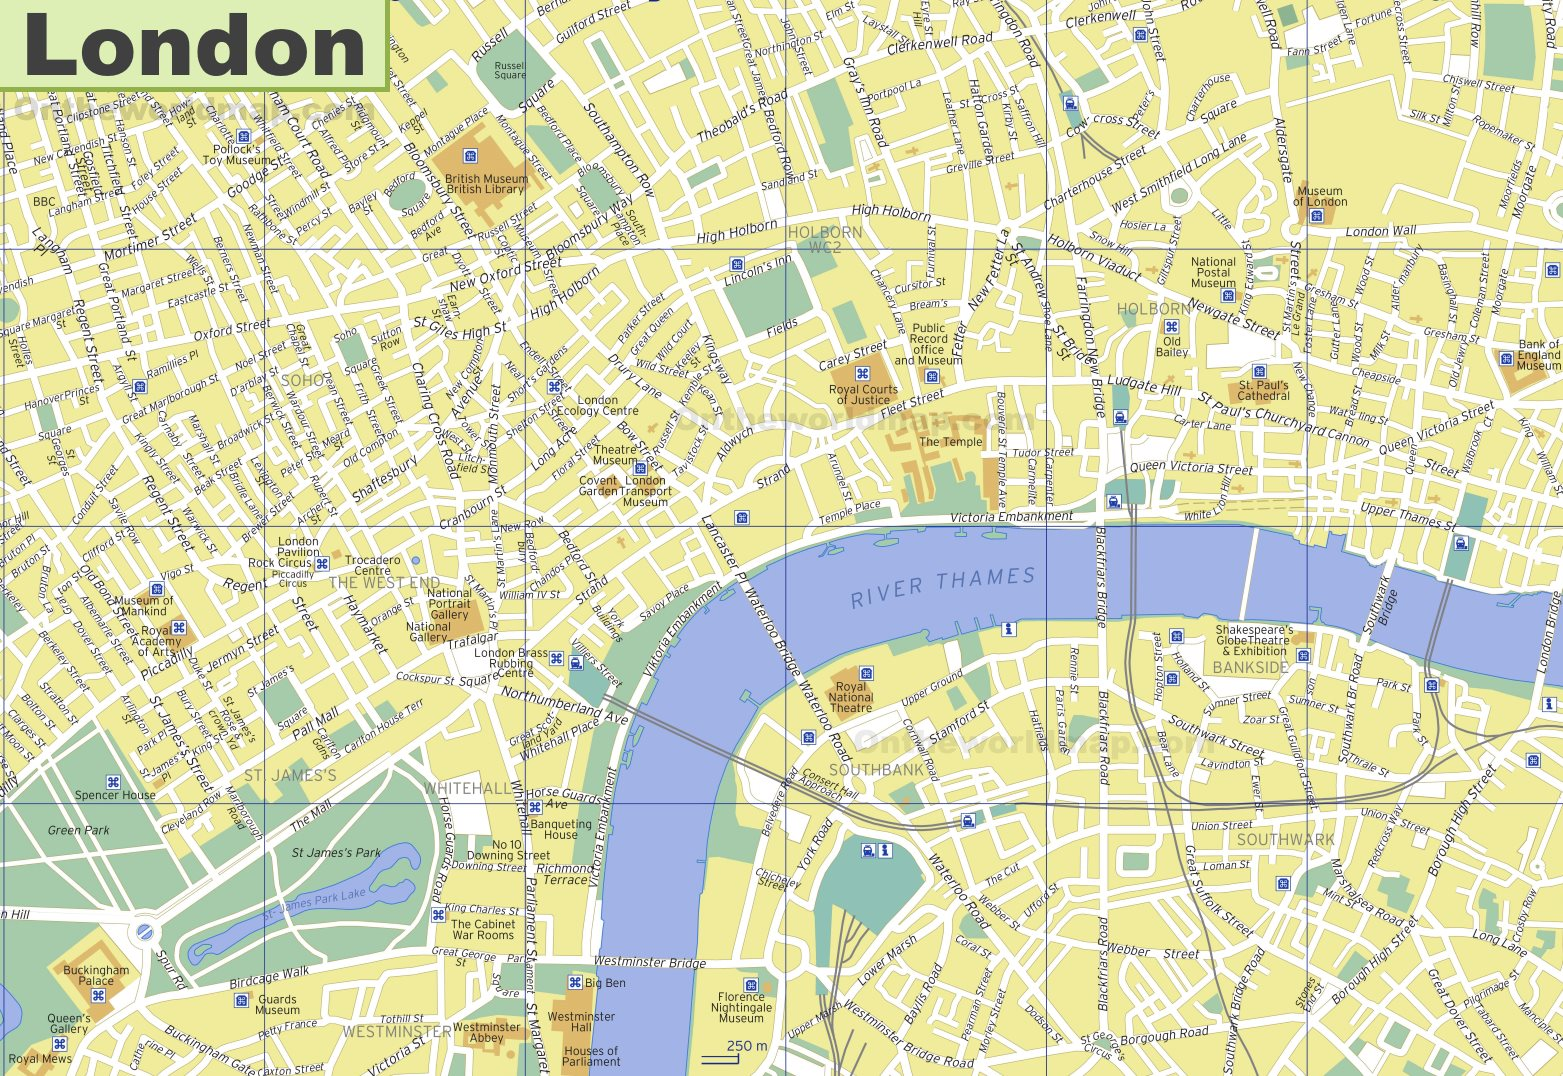 Touristic Map Of London.London Tourist Attractions Map